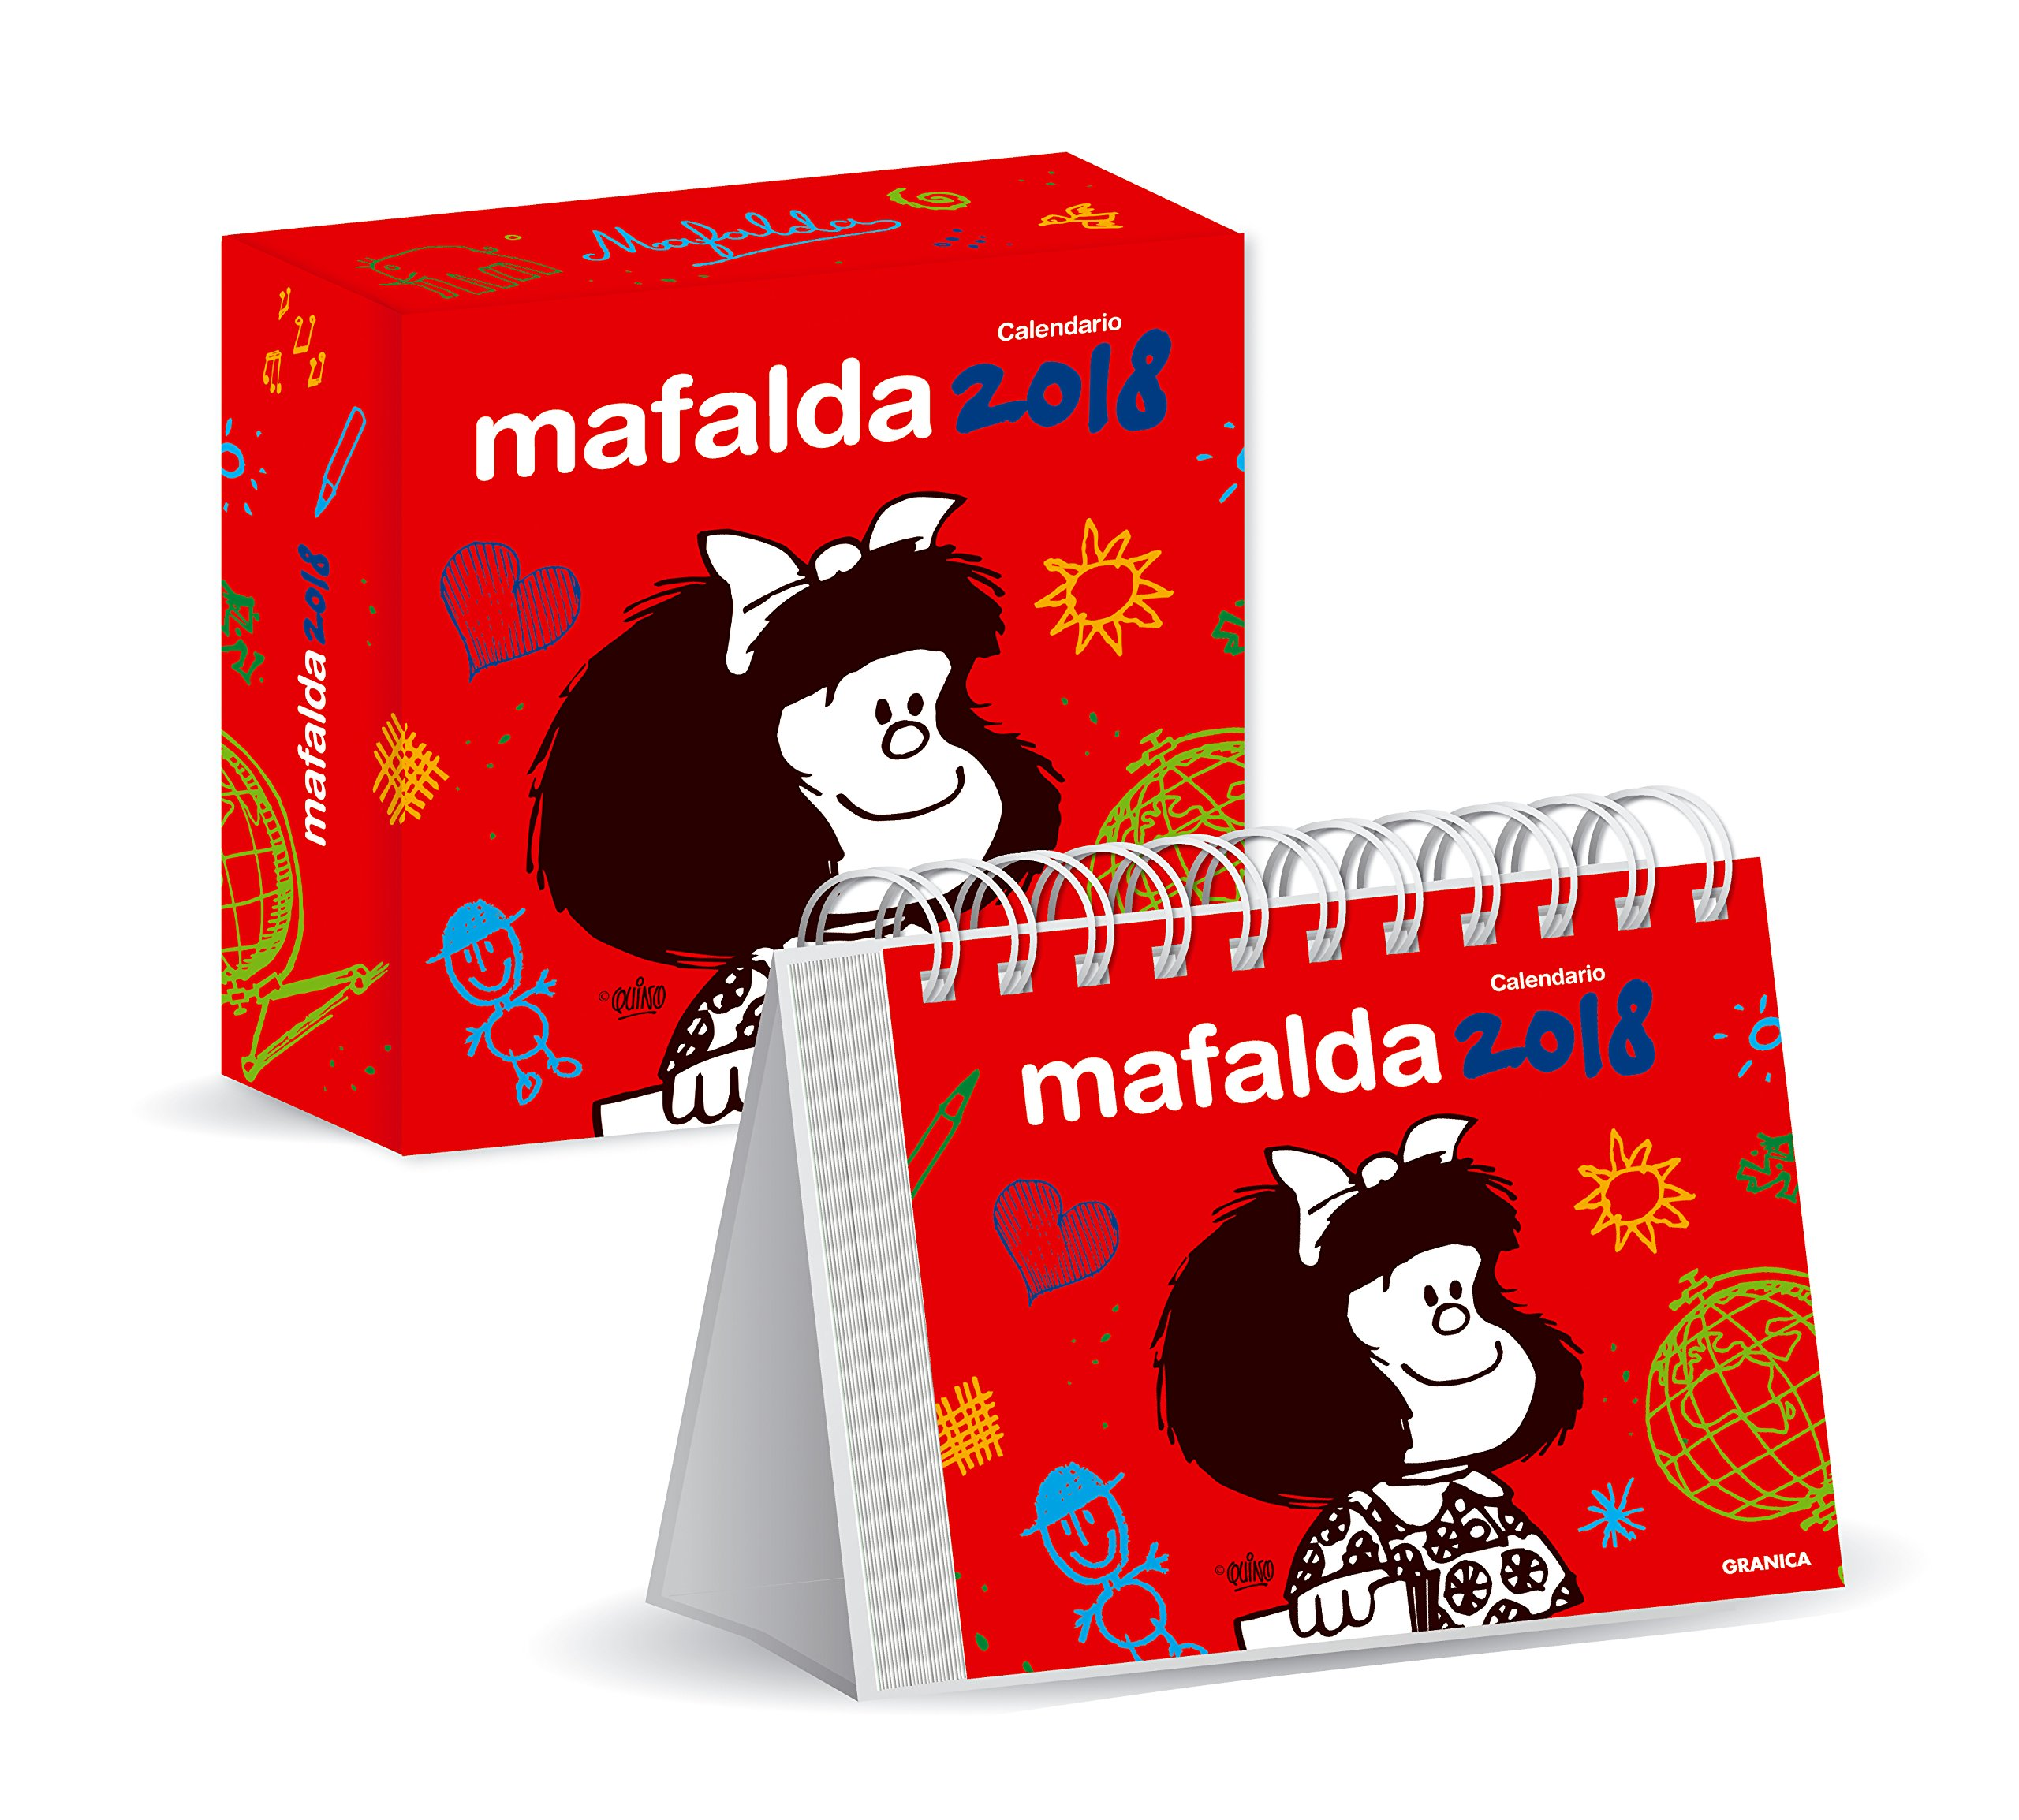 Mafalda 2018 Calendario de escritorio con caja - Rojo (Spanish Edition): Quino: 7798071445112: Amazon.com: Books